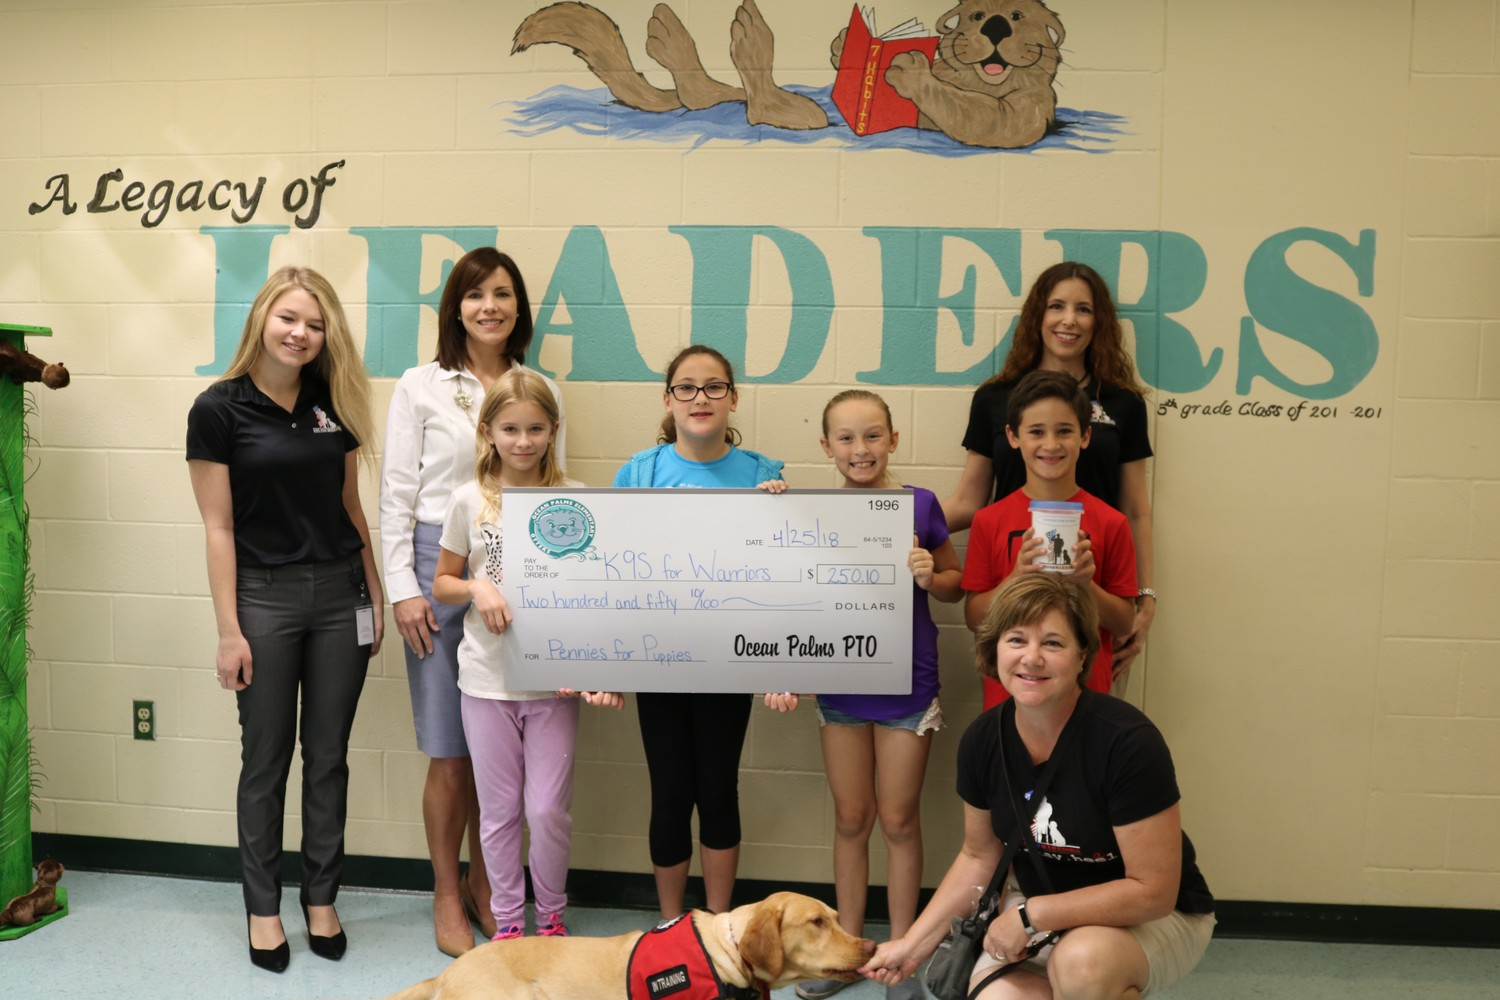 OPES students and staff present a check for $250.10 to K9s for Warriors after holding a fundraiser at a recent book fair.